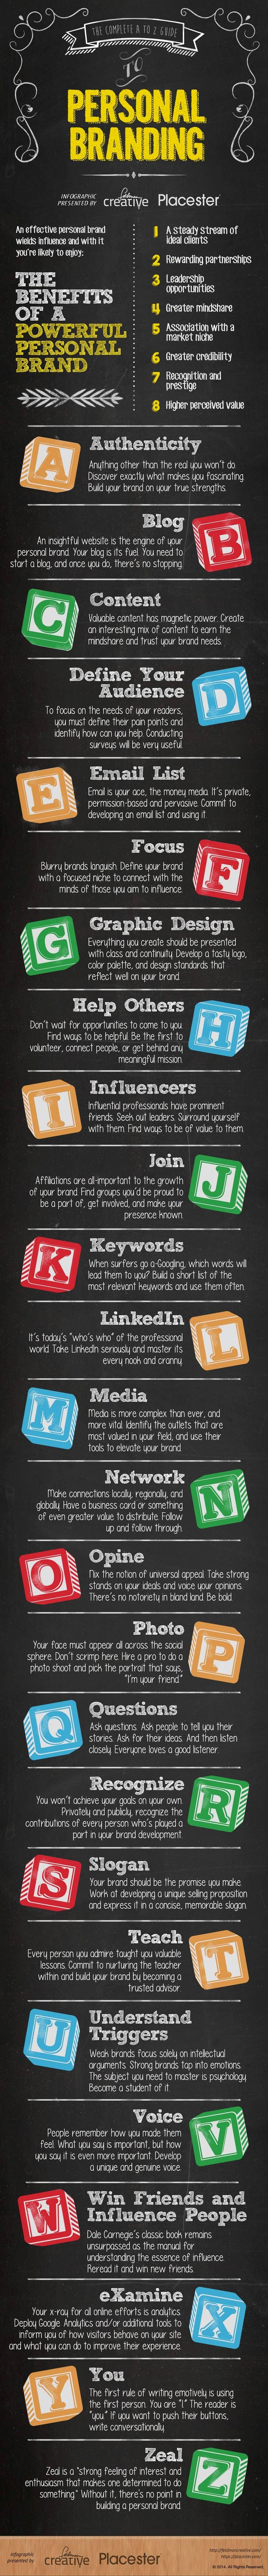 the-complete-a-to-z-guide-to-personal-branding